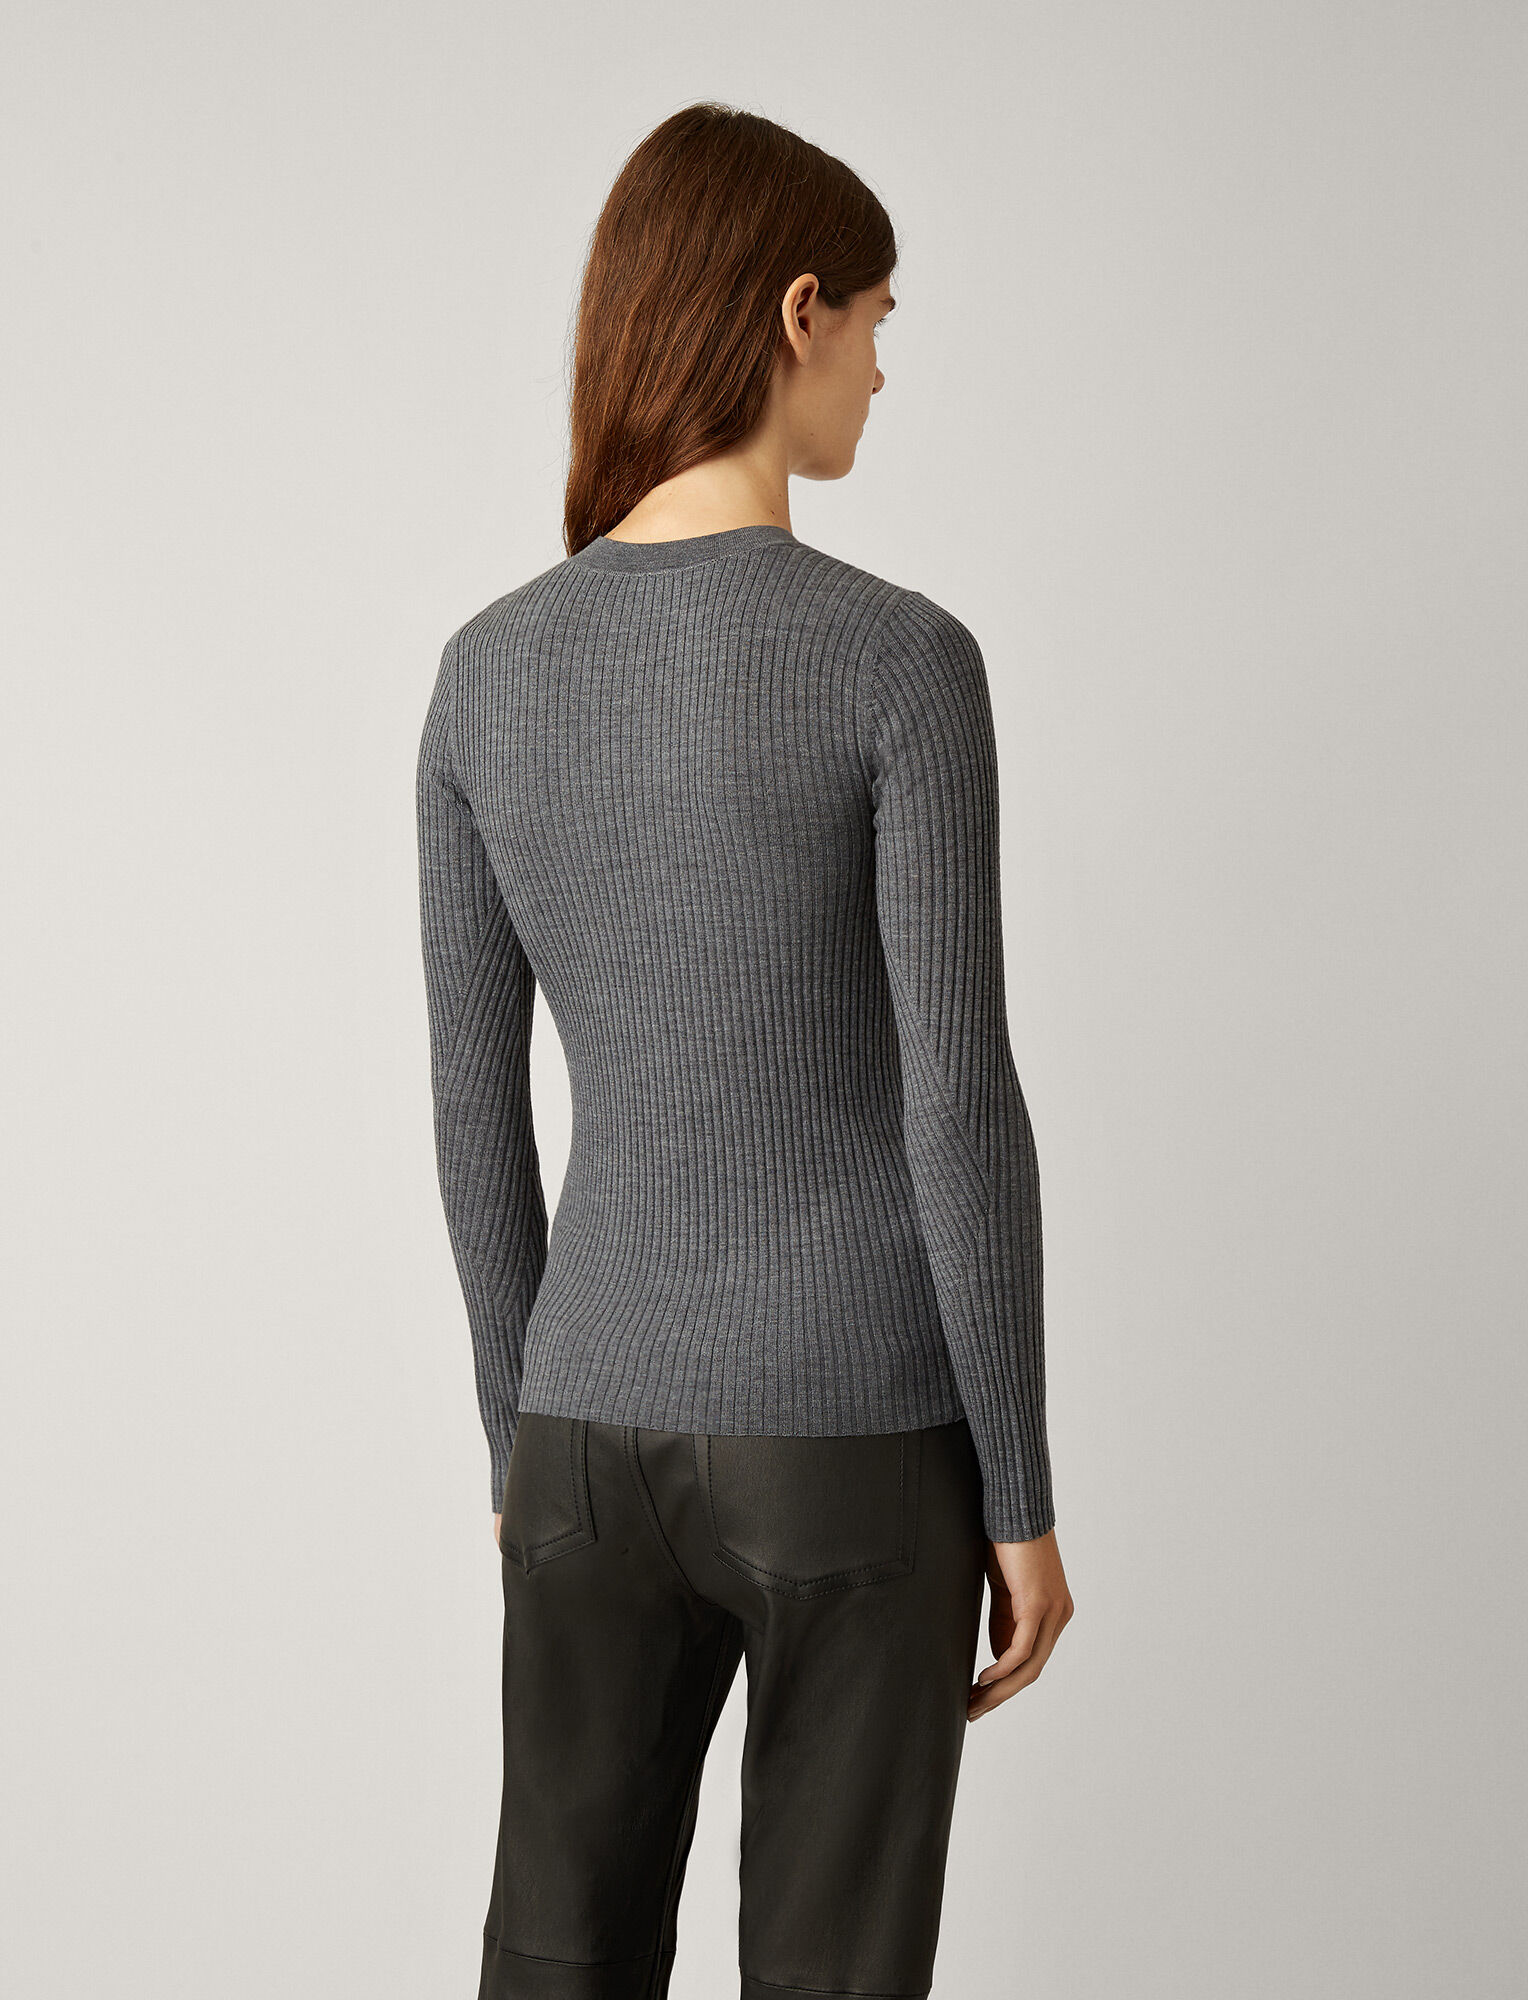 Joseph, Light Merinos Rib Knit, in CHARCOAL